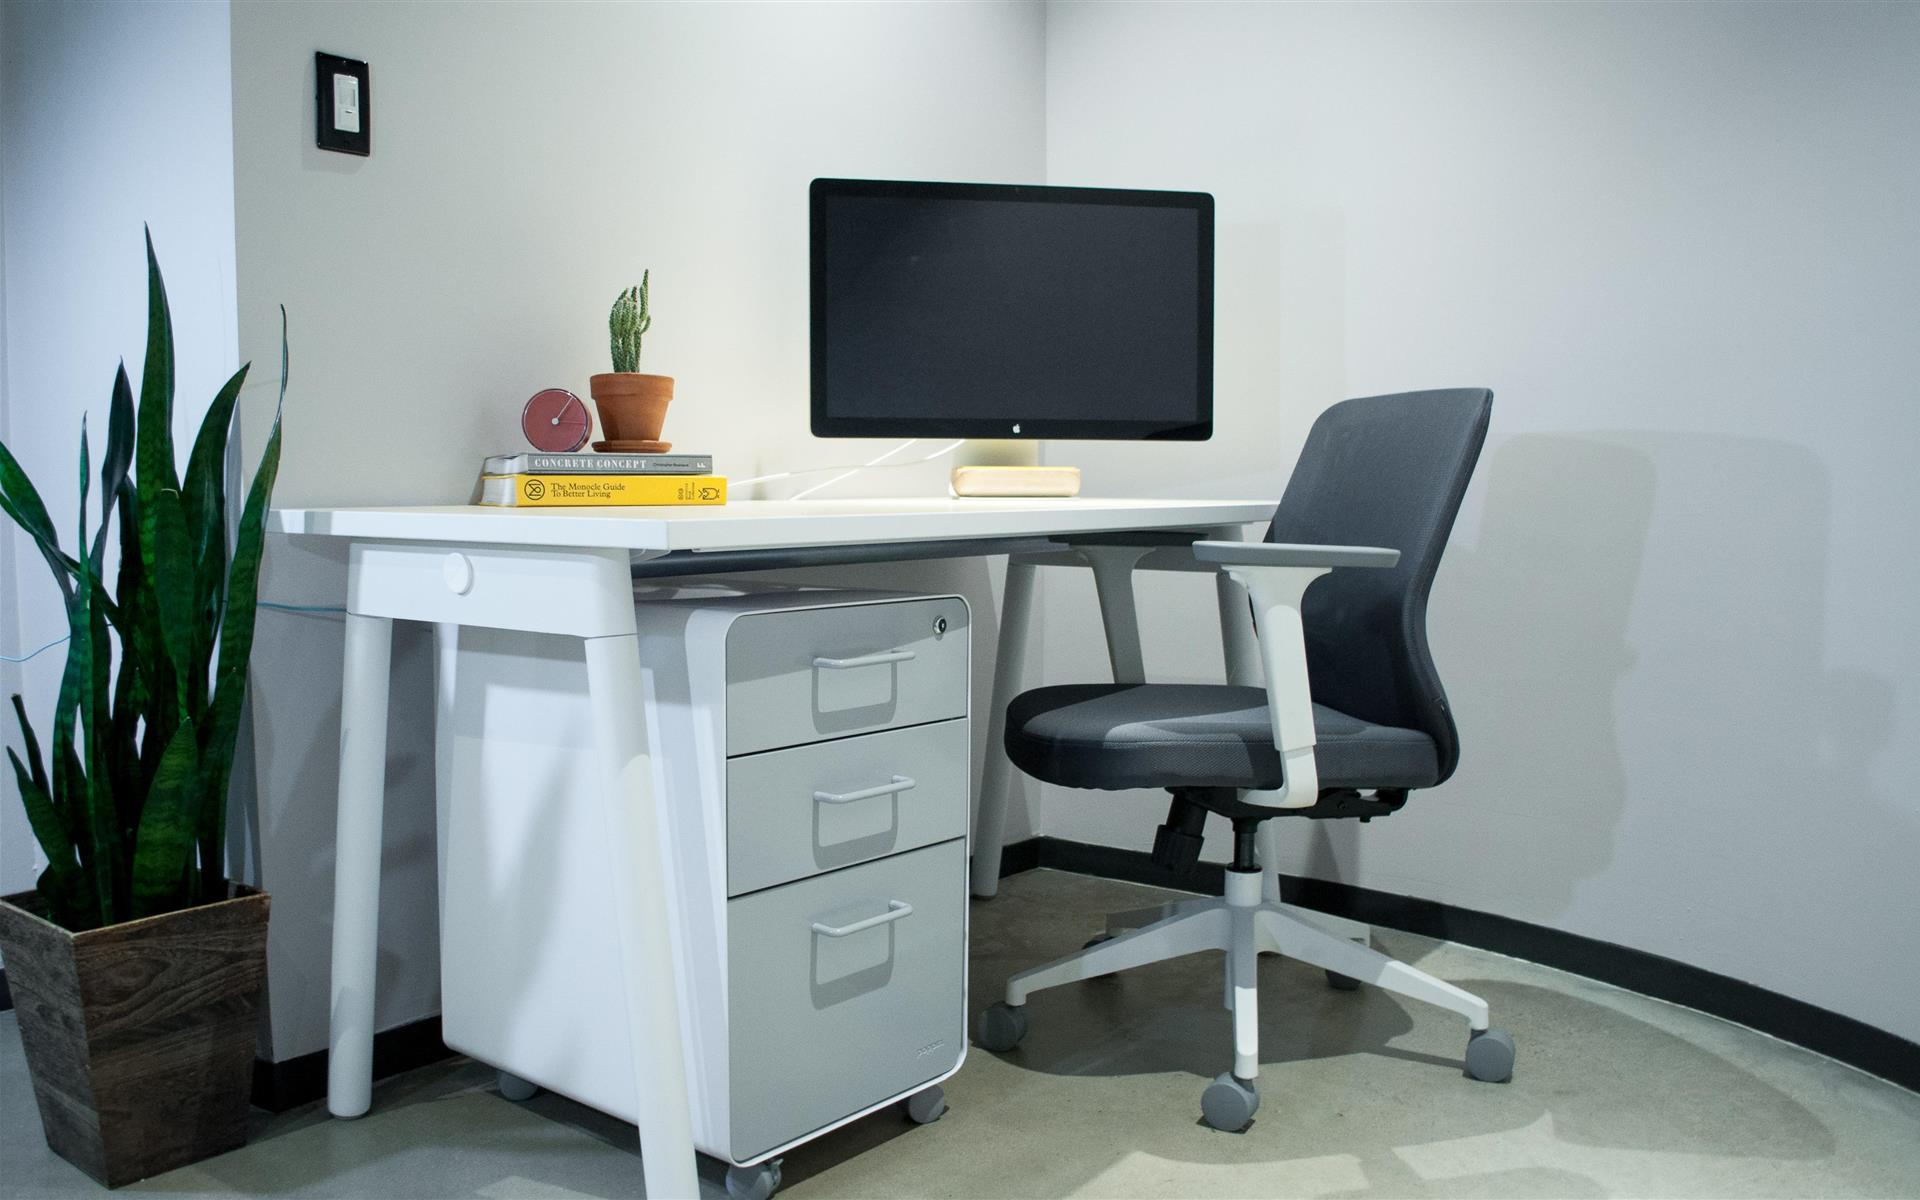 Mod Phoenix - Private office for 5